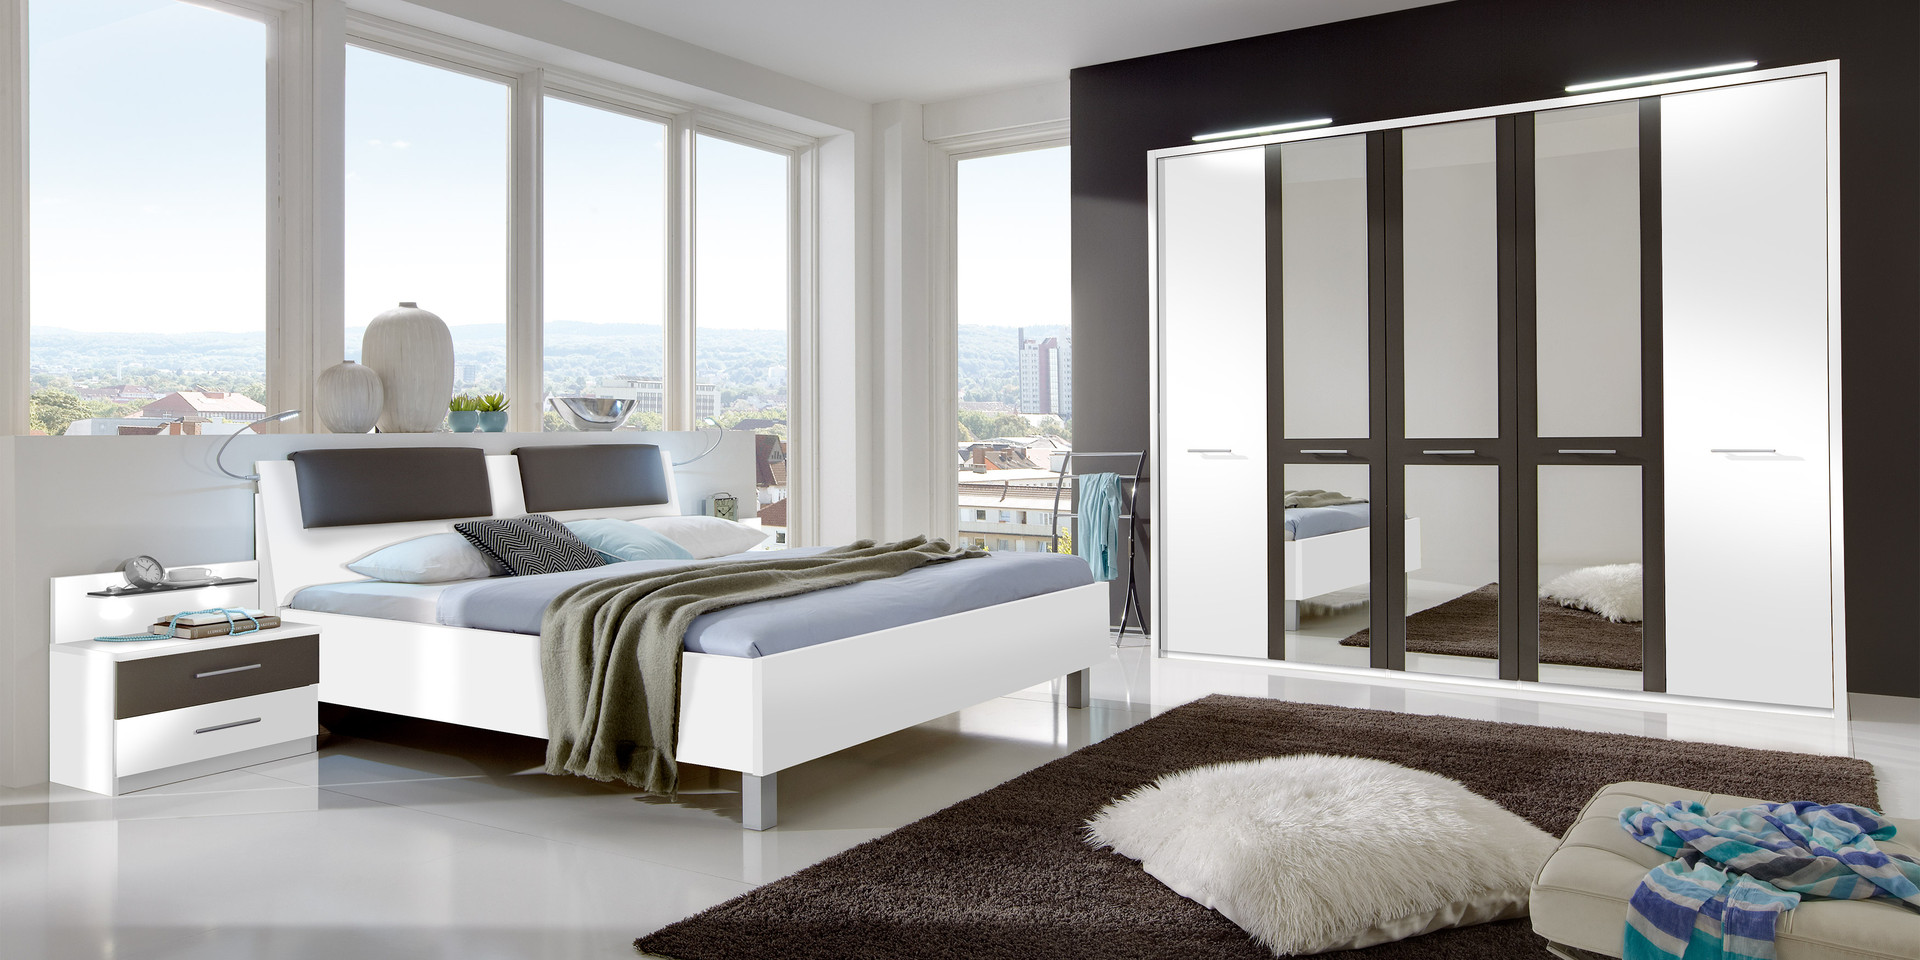 erleben sie das schlafzimmer portland m belhersteller wiemann. Black Bedroom Furniture Sets. Home Design Ideas